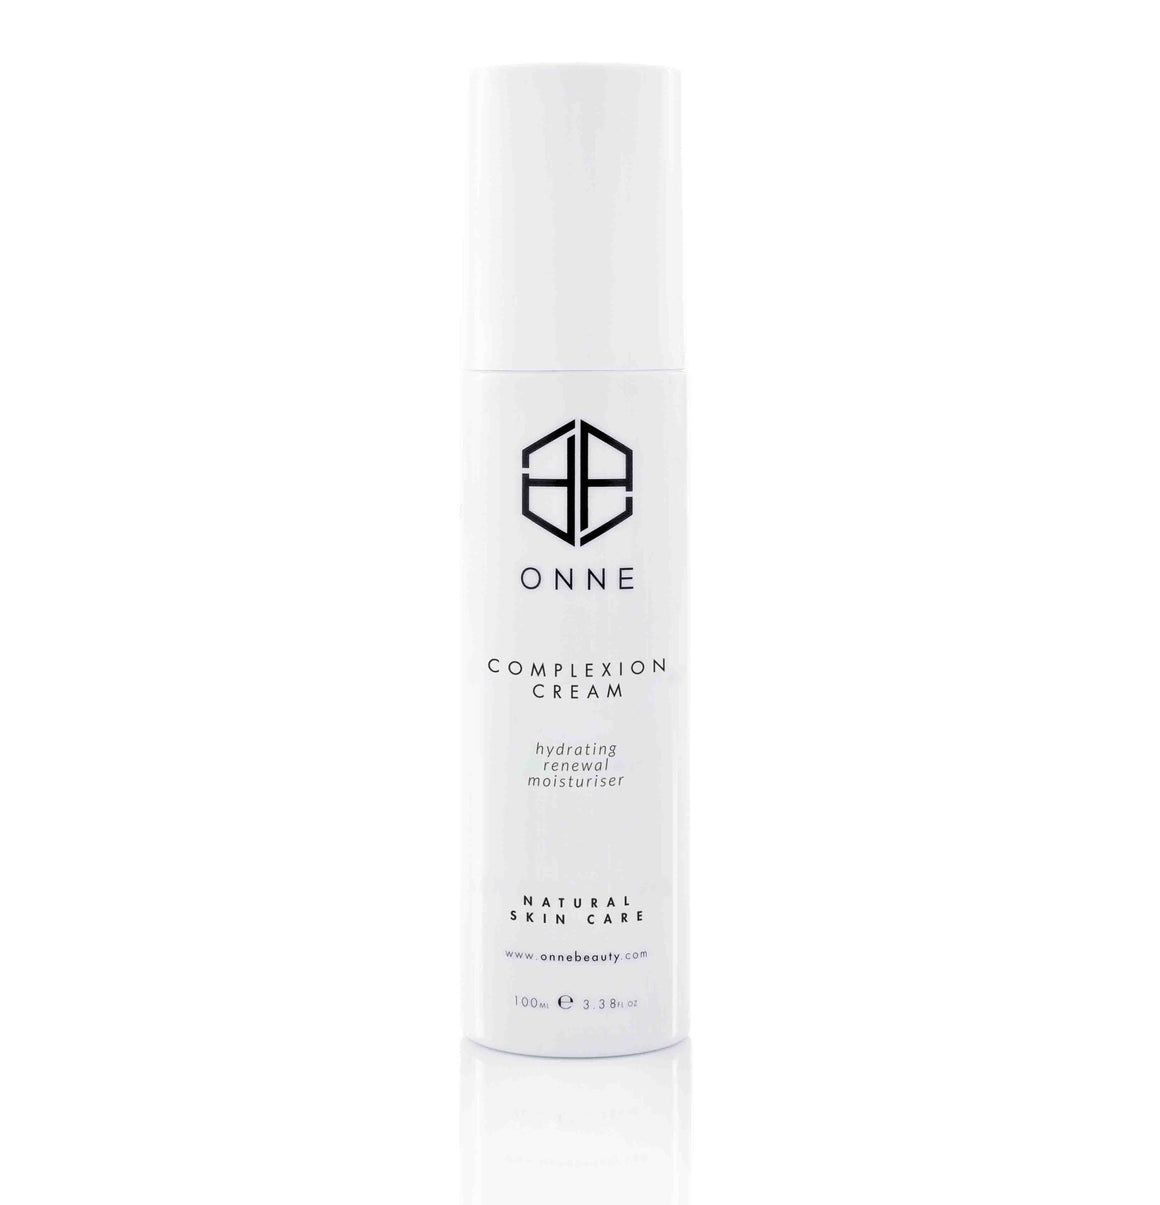 ONNE COMPLEXION CREAM